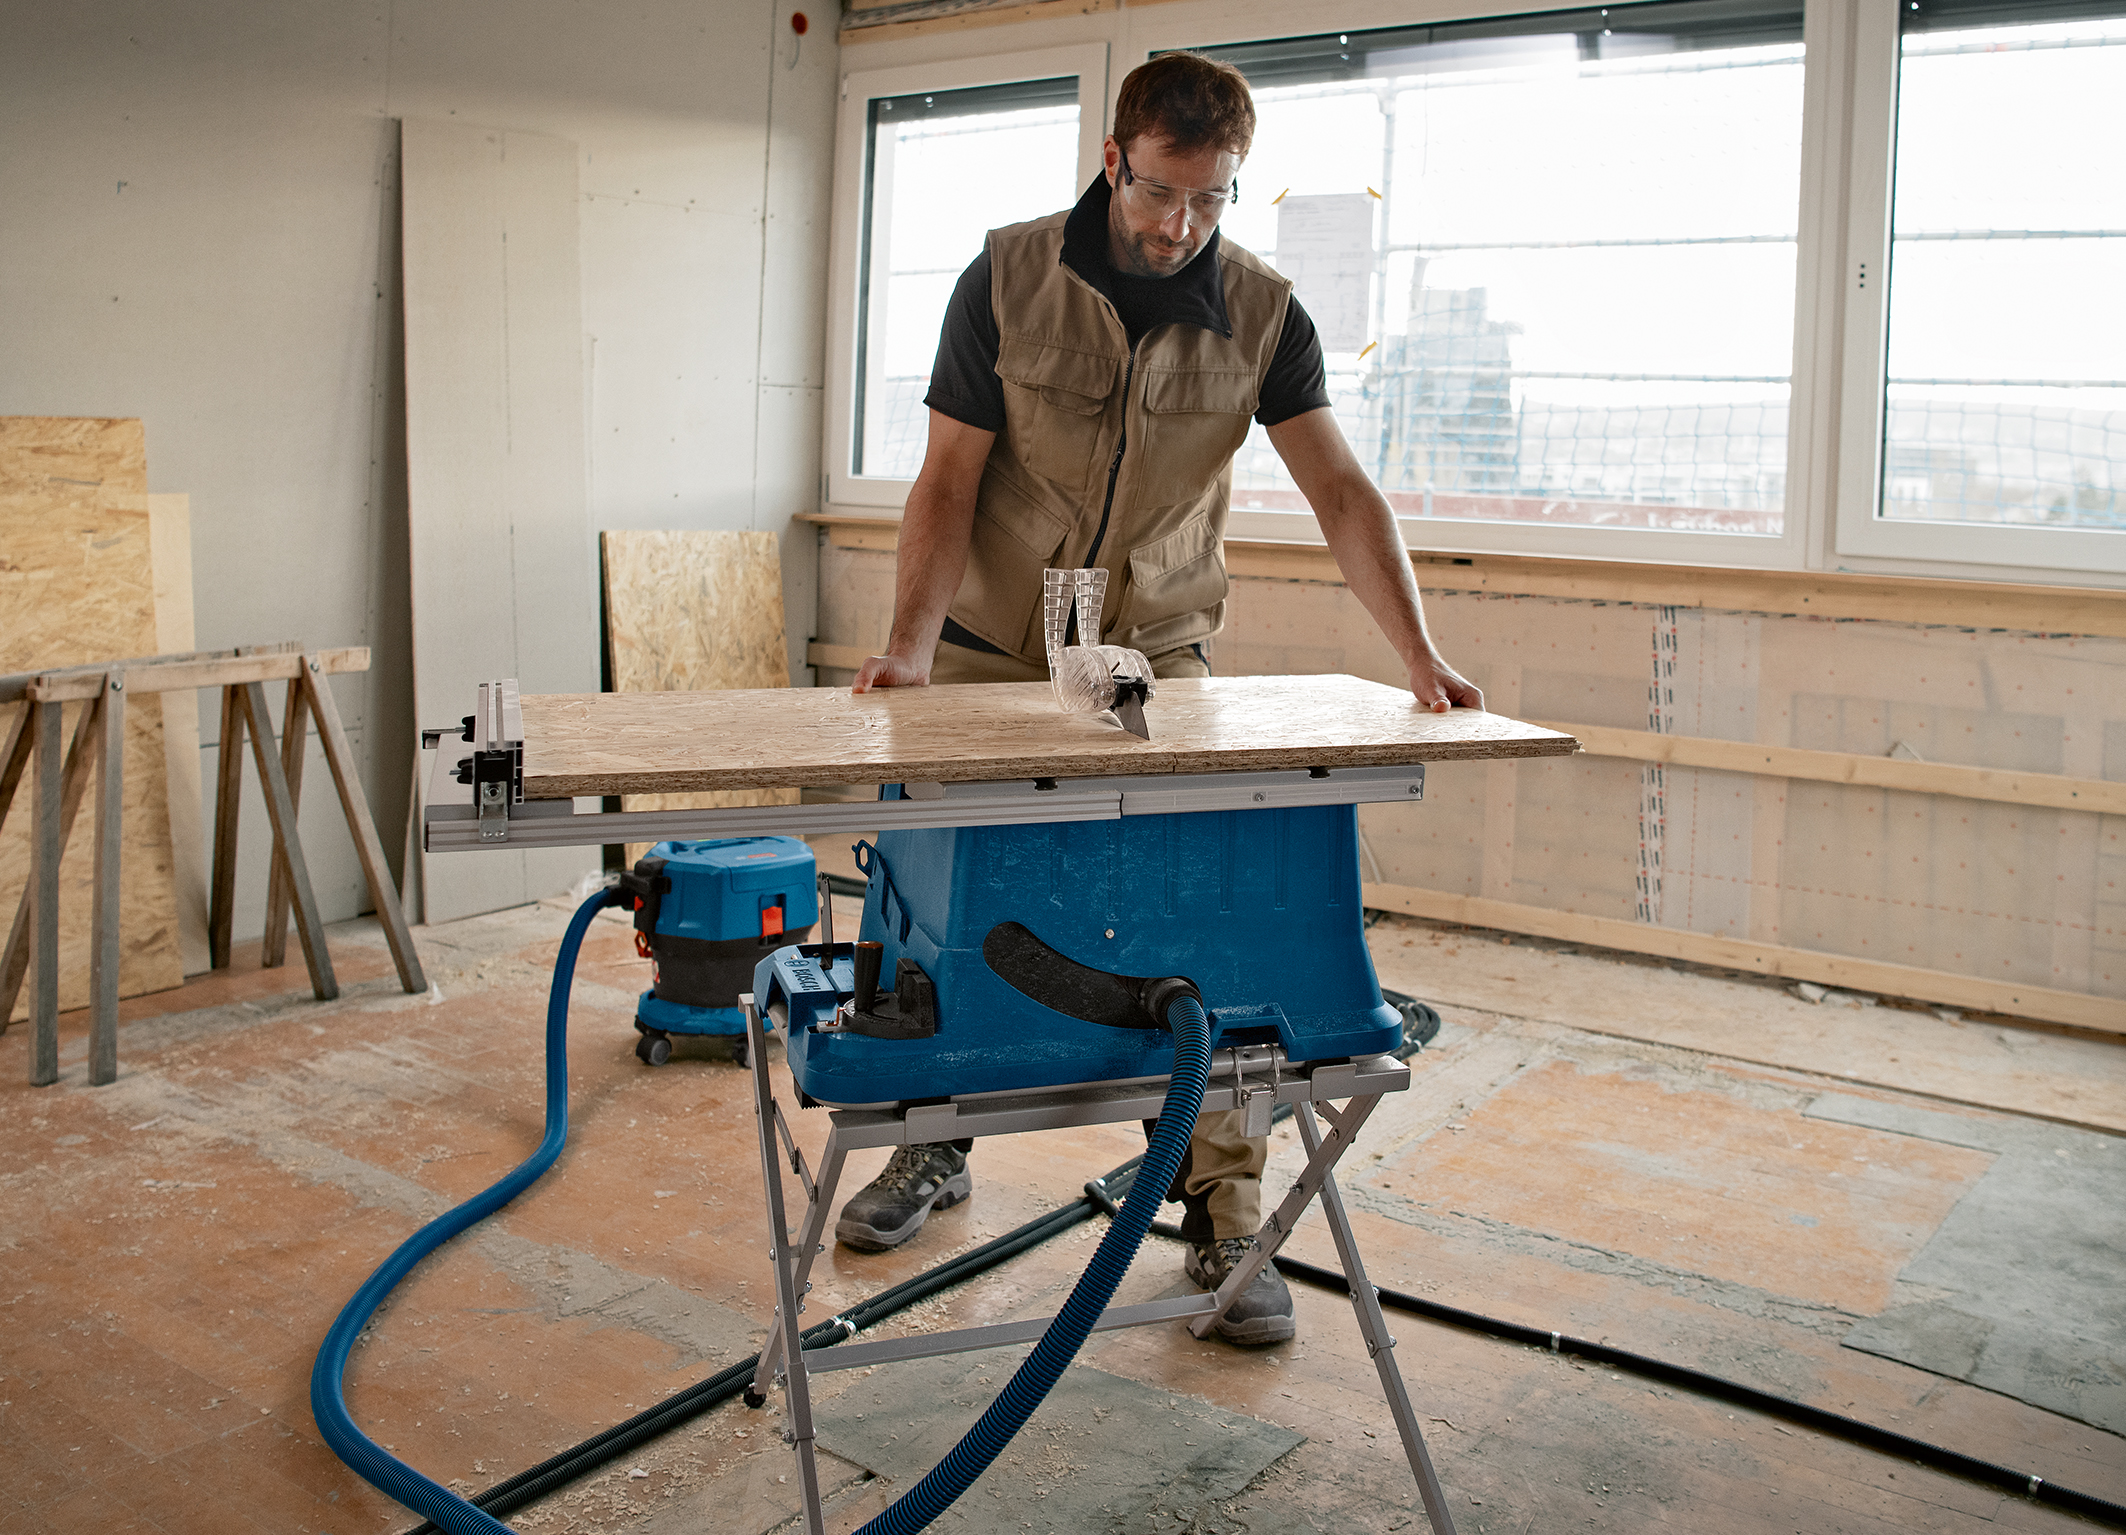 The best cutting capacity in its class and high user protection: Biturbo table saw GTS 18V-216 Professional from Bosch for pros